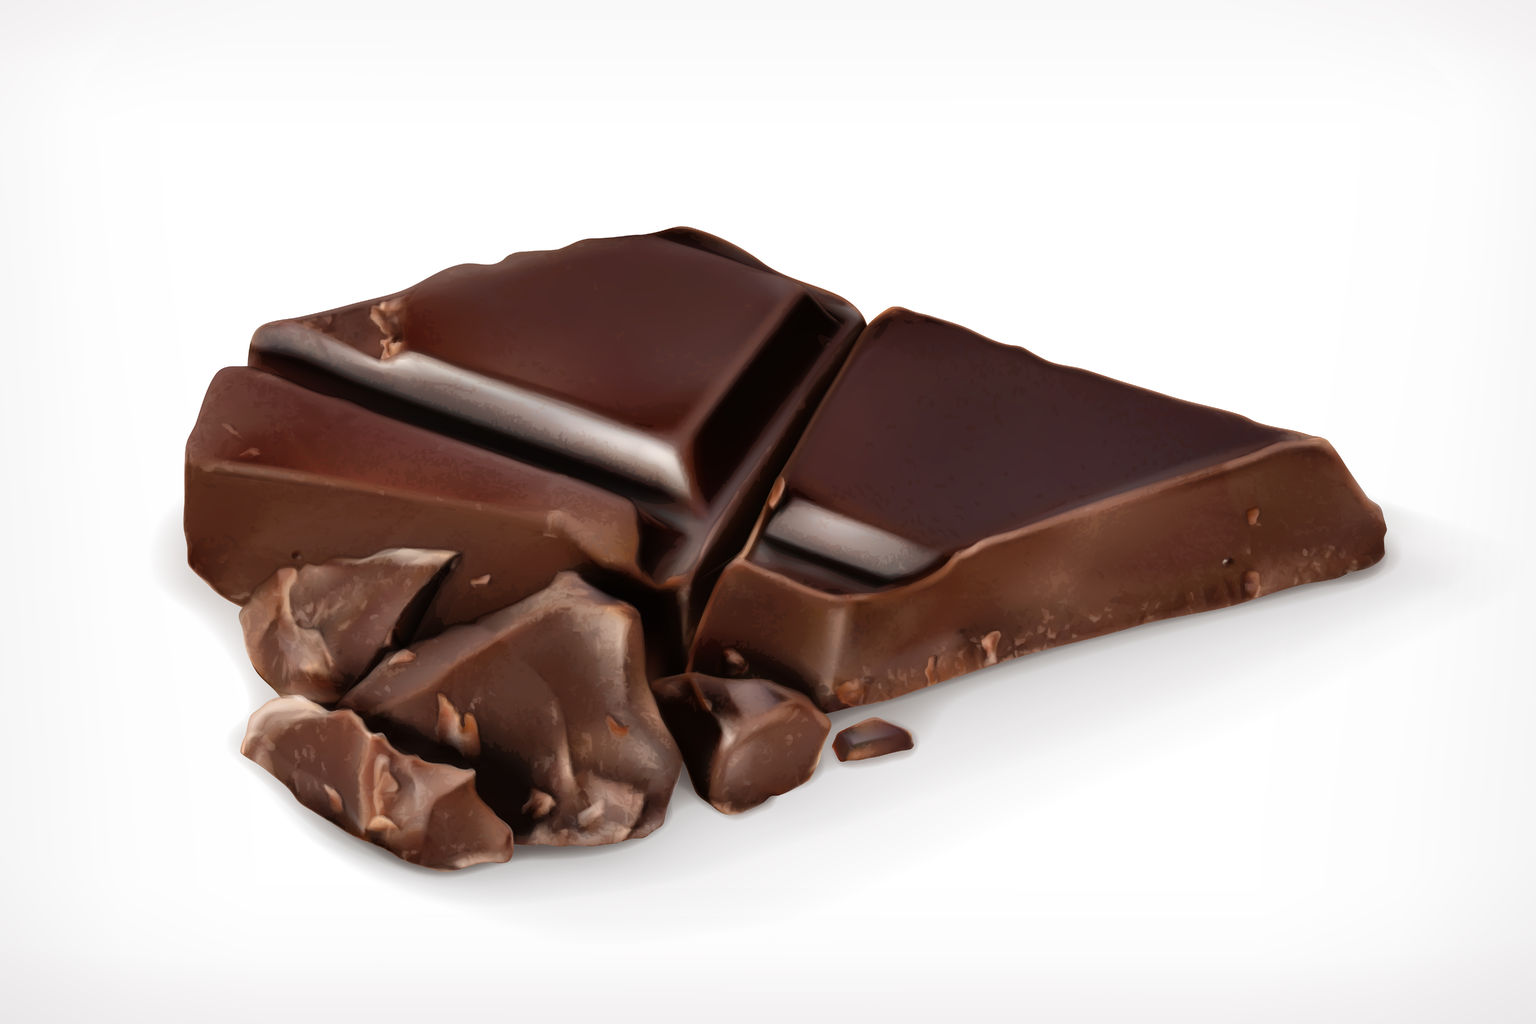 chocolate better than codeine cough syrup for treating cough